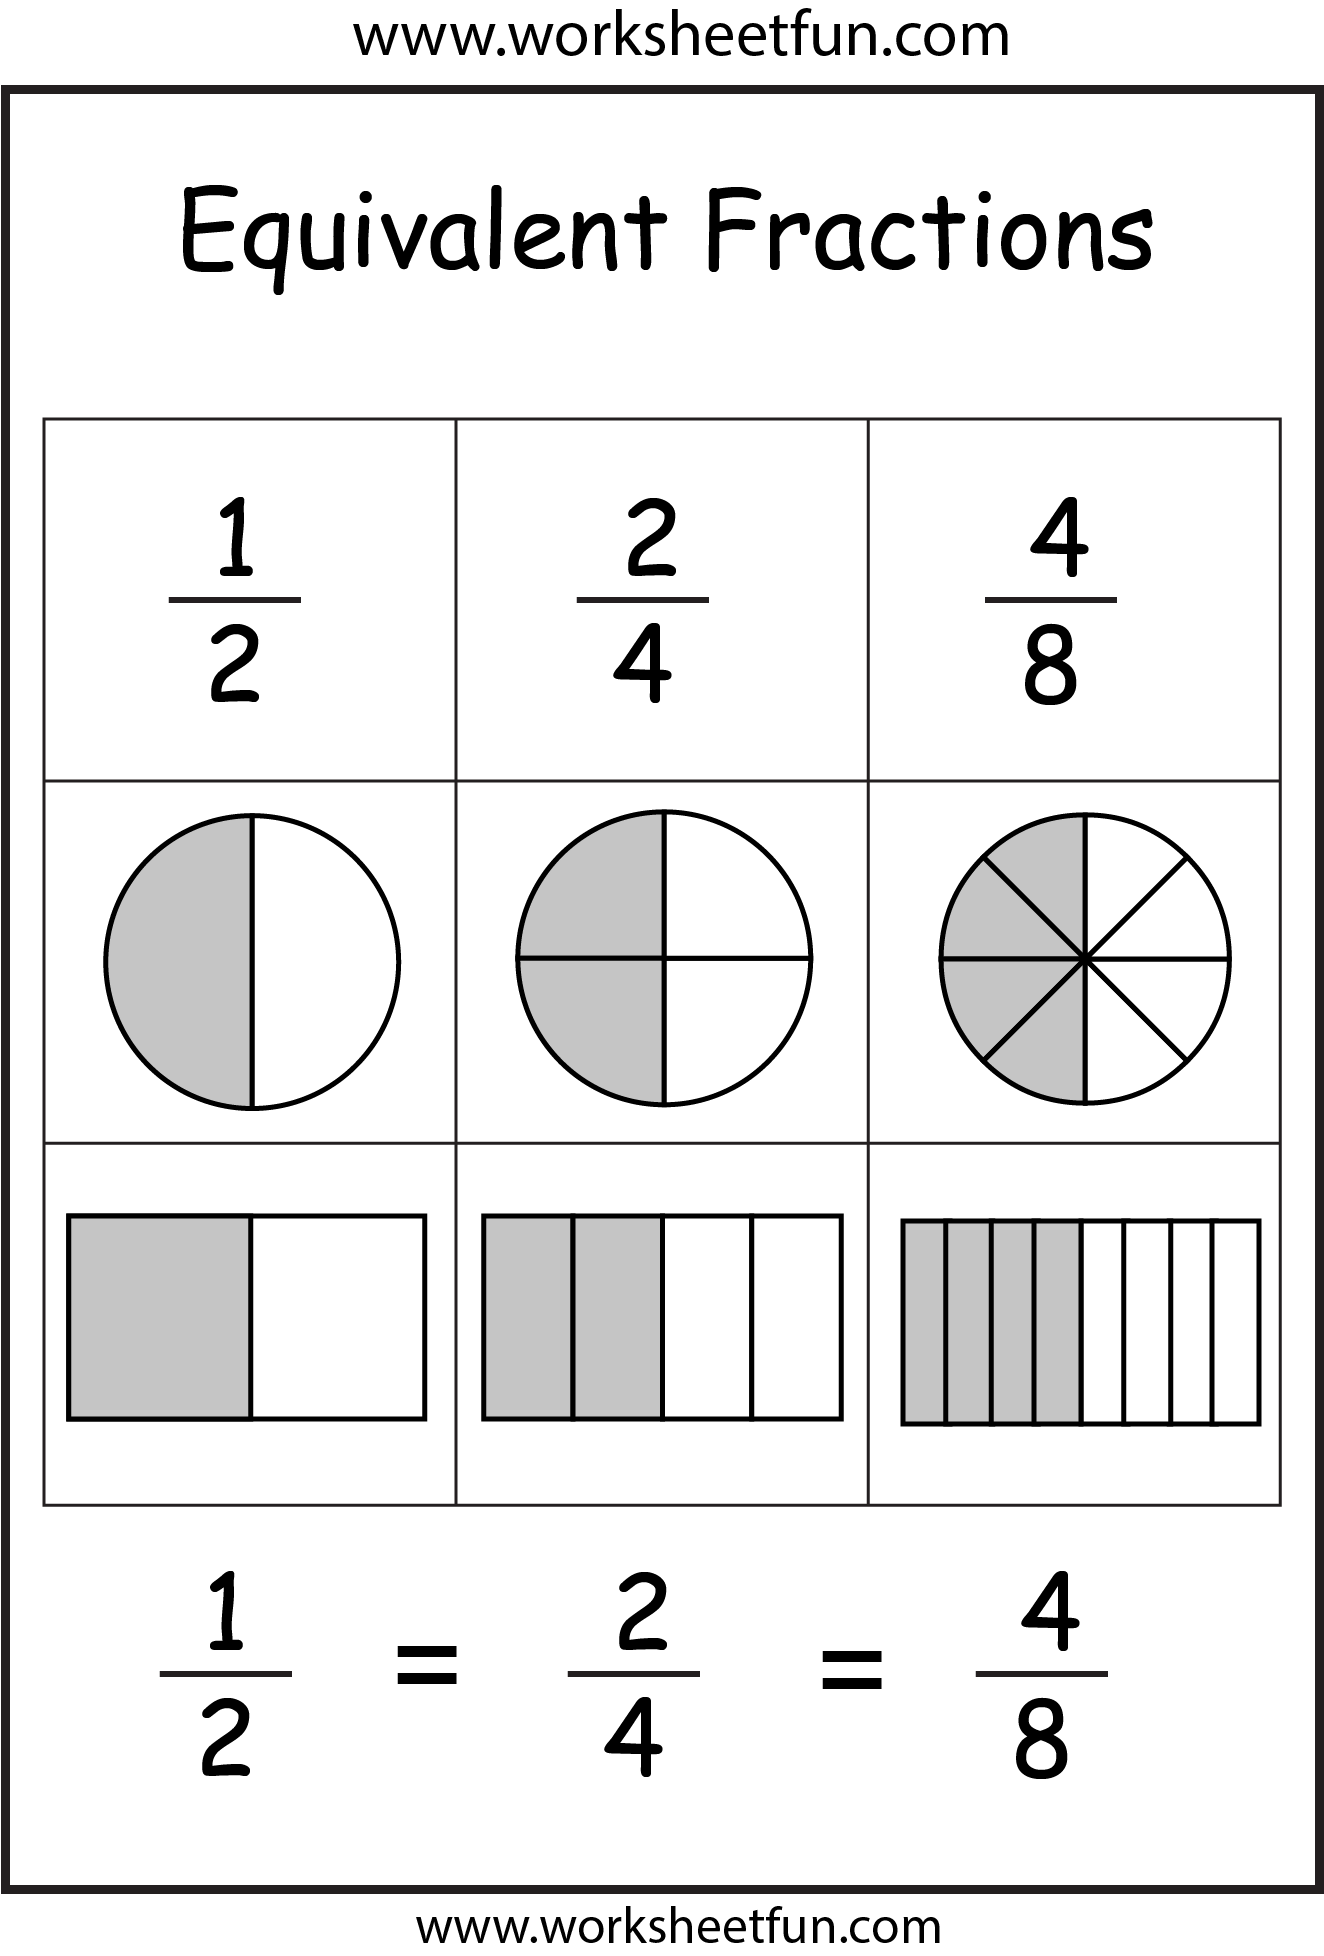 Equivalent fractions worksheets 3rd grade